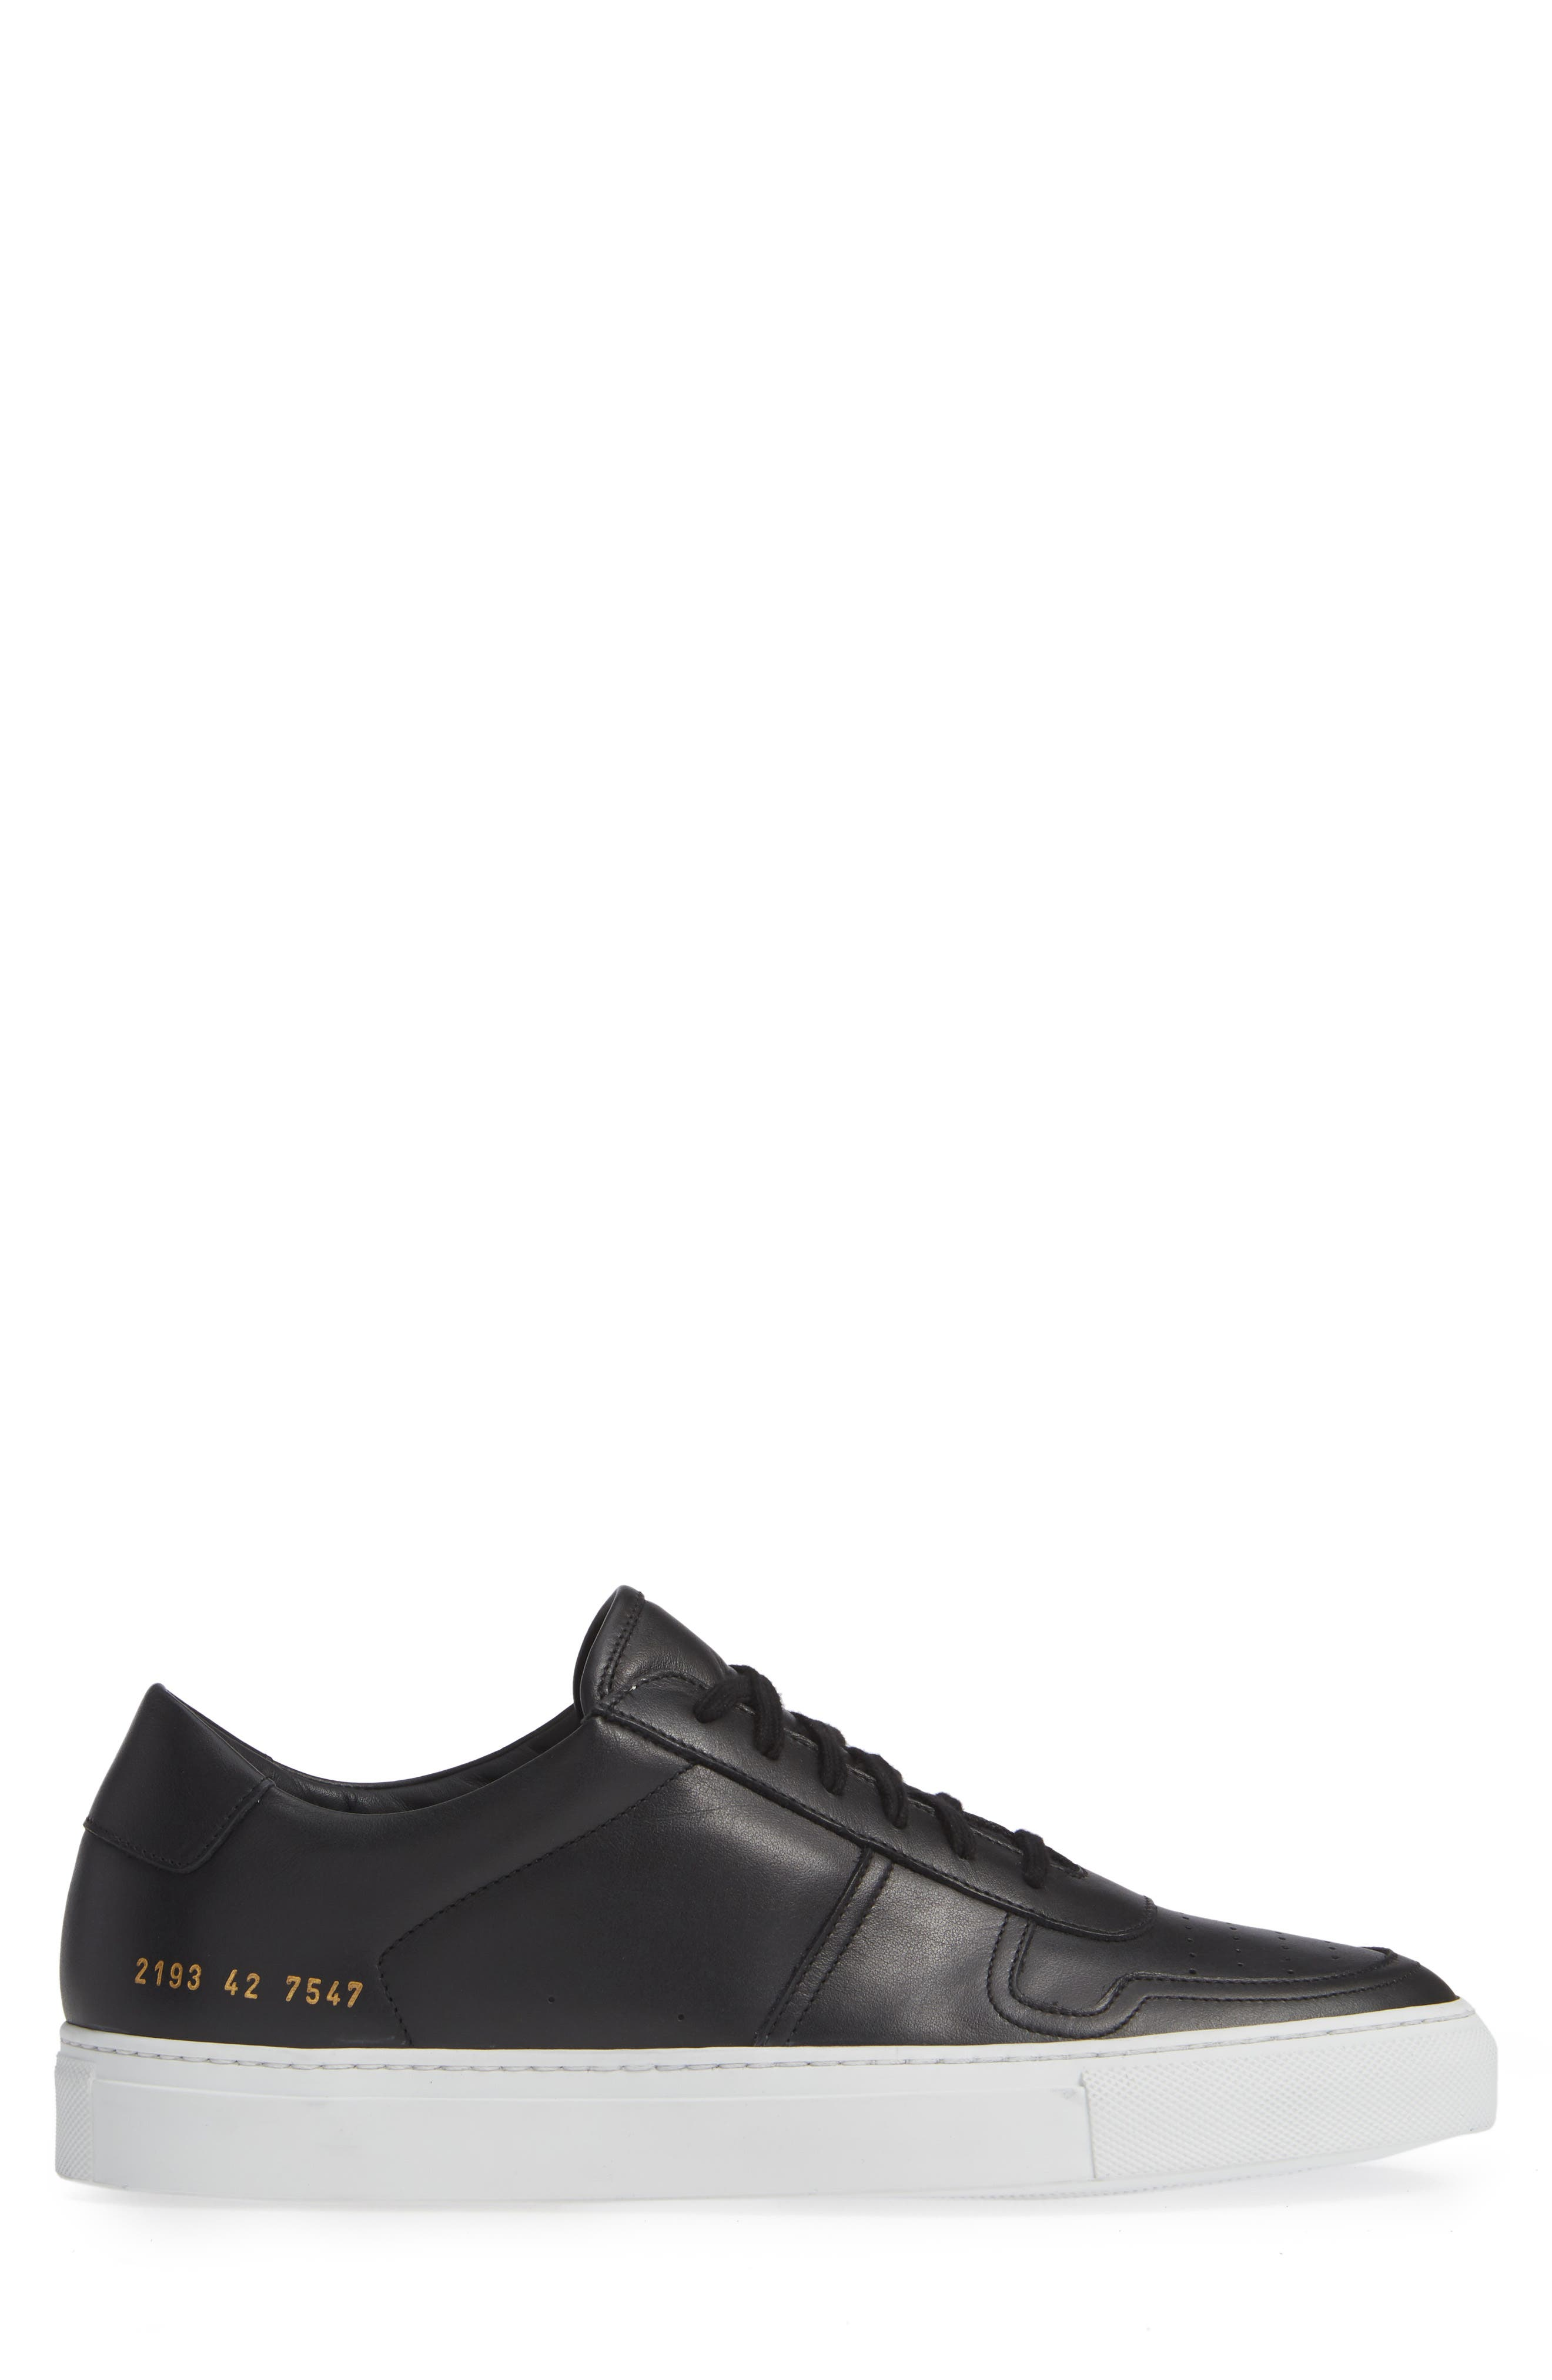 COMMON PROJECTS, Bball Low Top Sneaker, Alternate thumbnail 3, color, BLACK